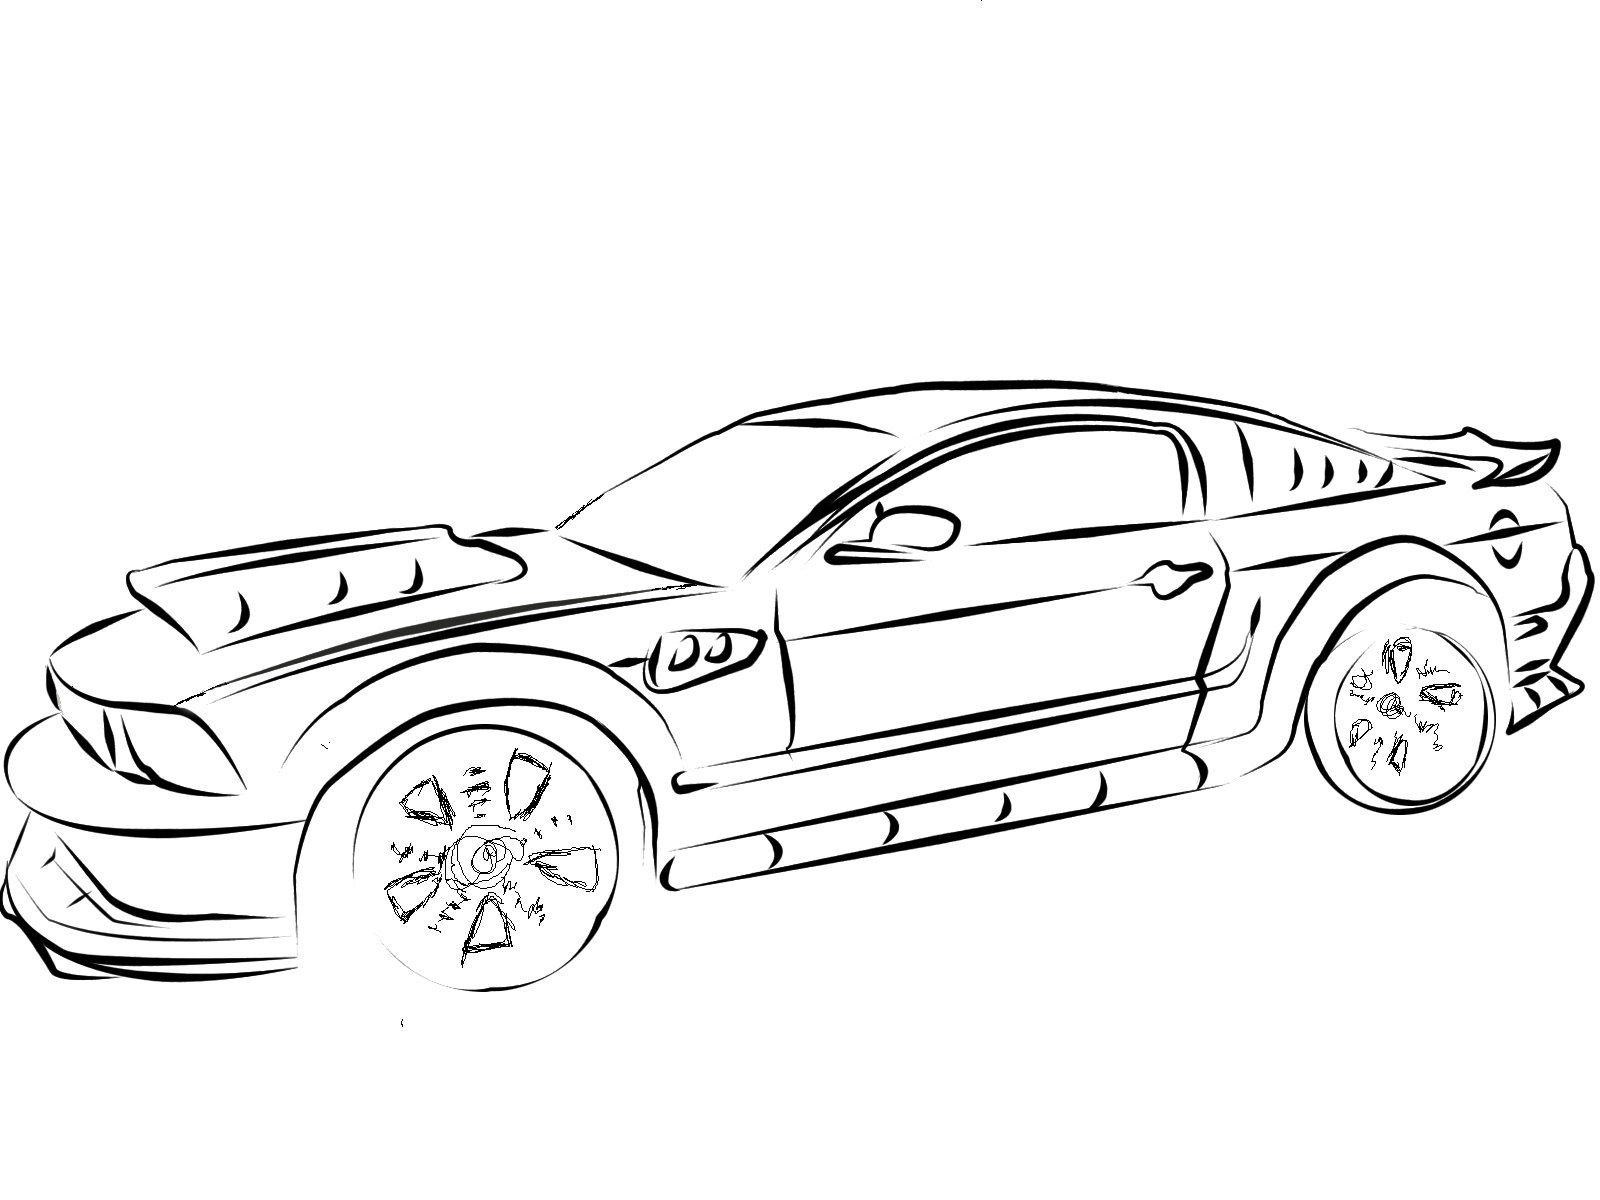 Ausmalbilder Mustang Auto : Ford Mustang Drawing At Getdrawings Com Free For Personal Use Ford